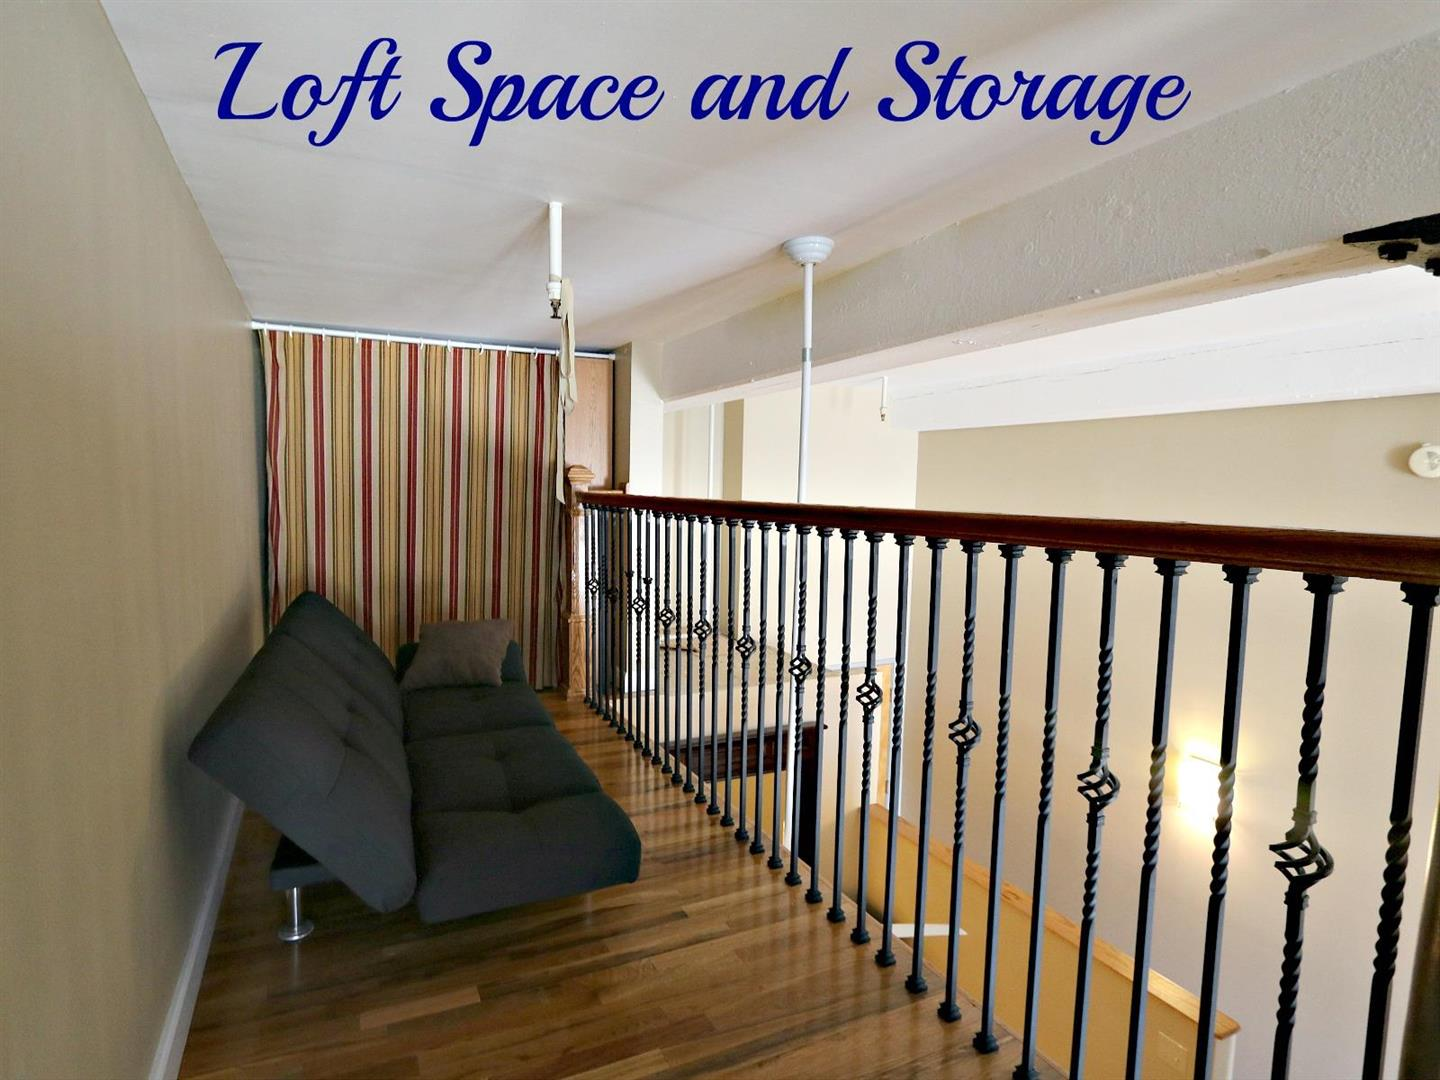 CottonMillCondo241LoftStorage.jpg